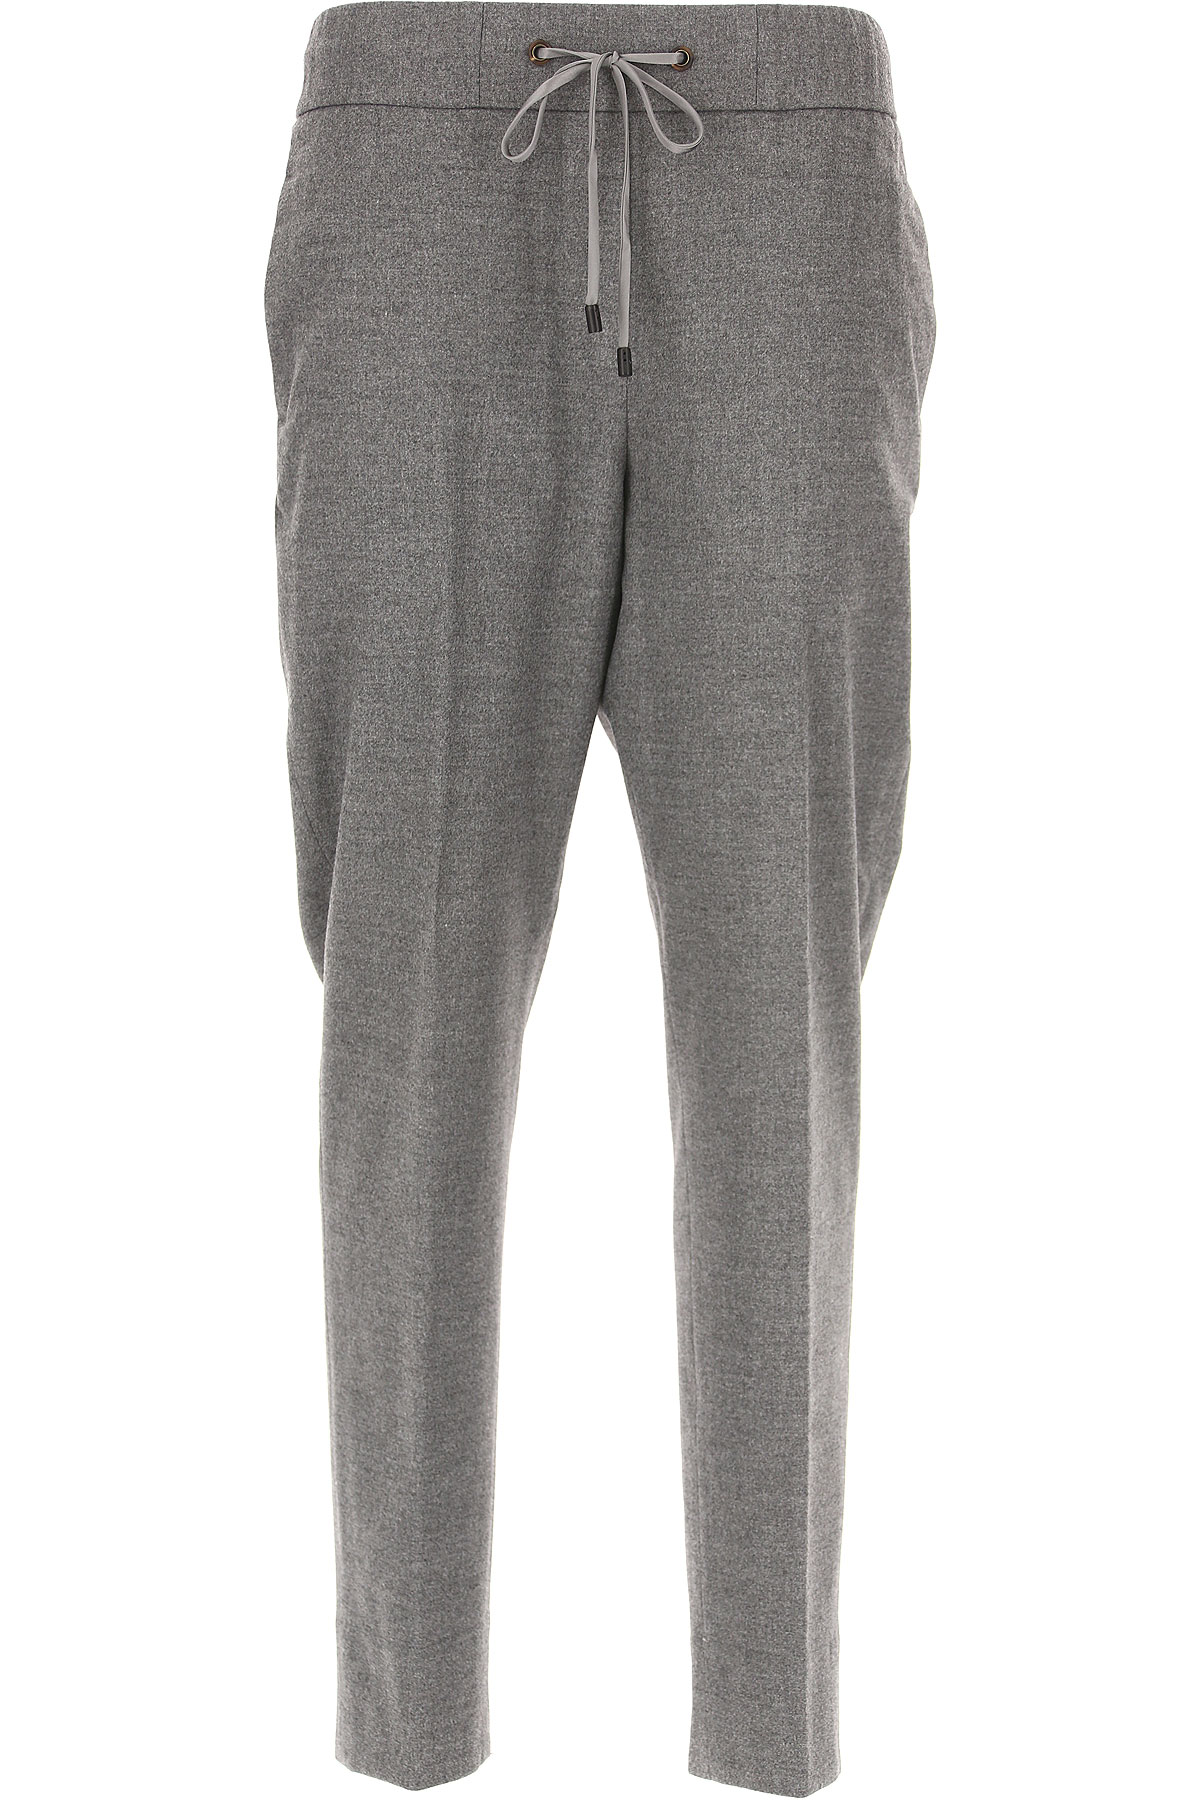 Image of Peserico Pants for Women On Sale in Outlet, Medium Grey, polyester, 2017, 28